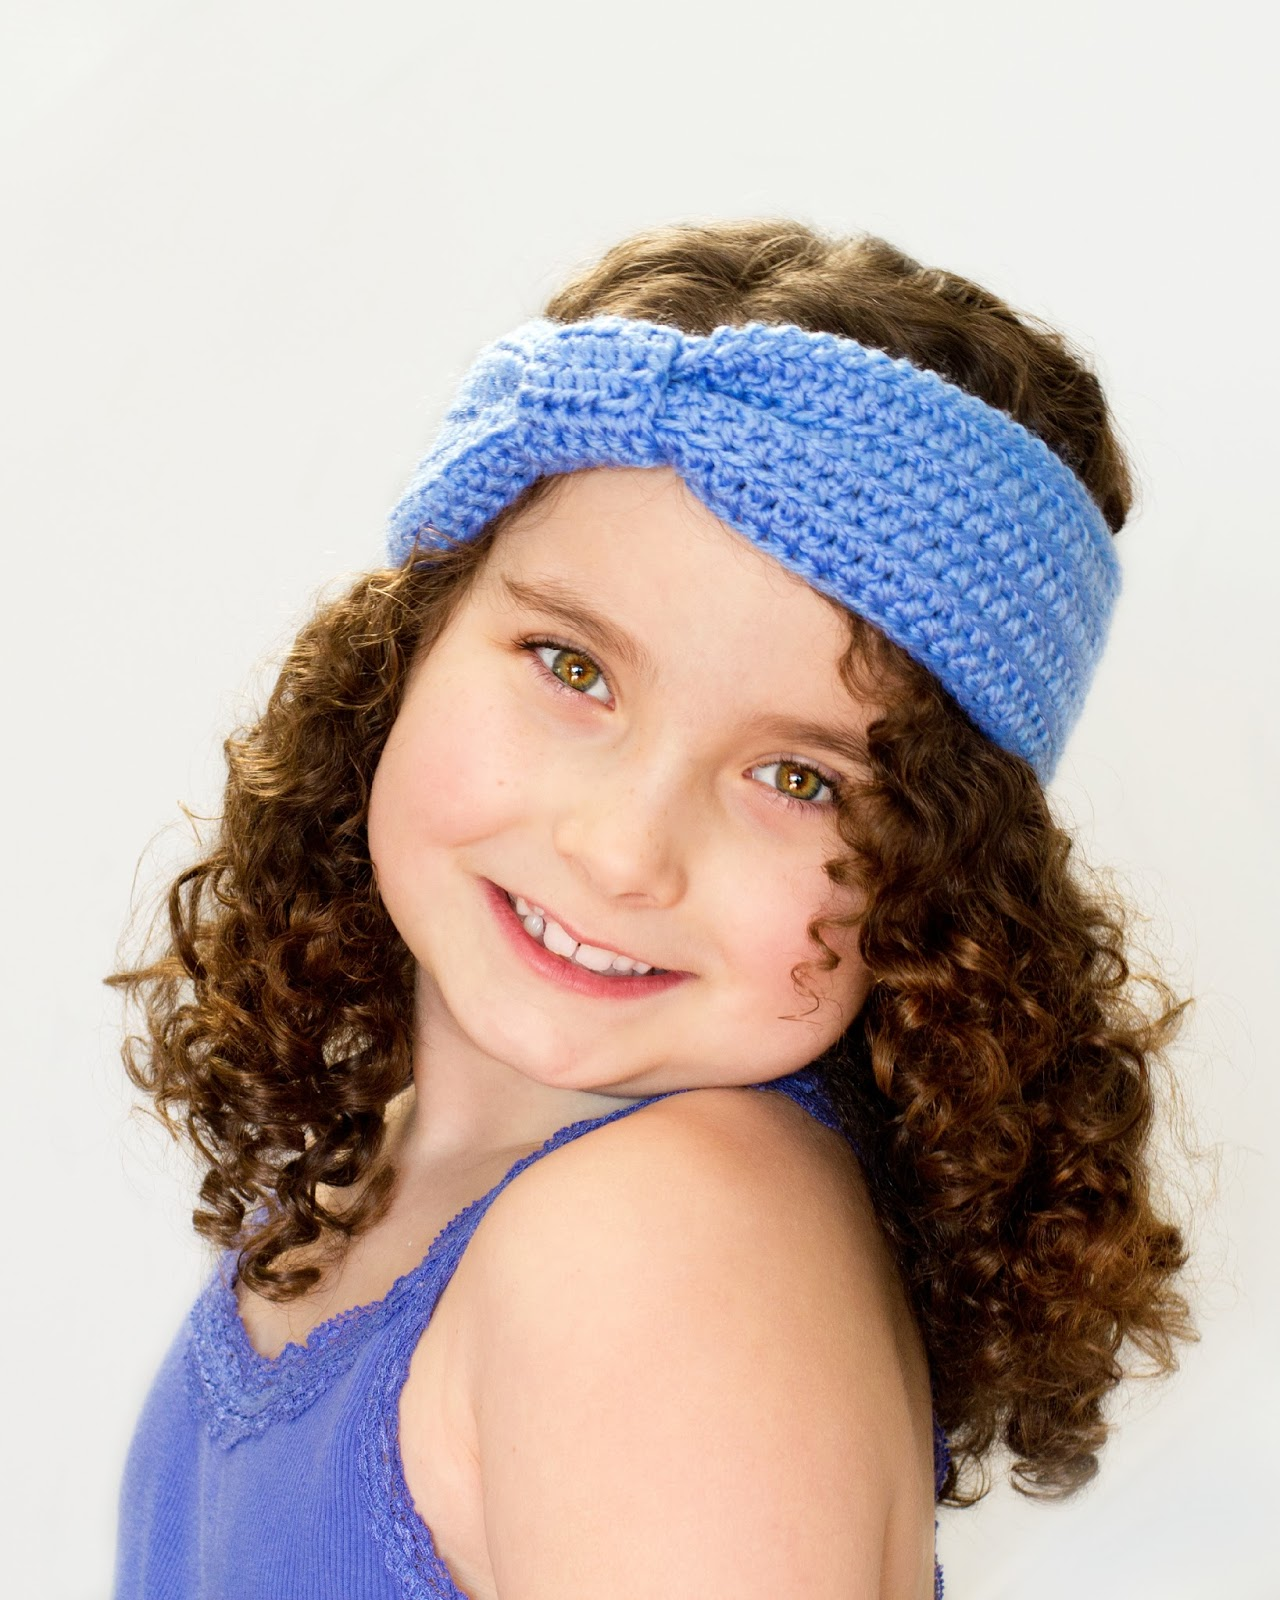 ... , Crochet, Create: 10 Free Beautiful Boho Headband Crochet Patterns